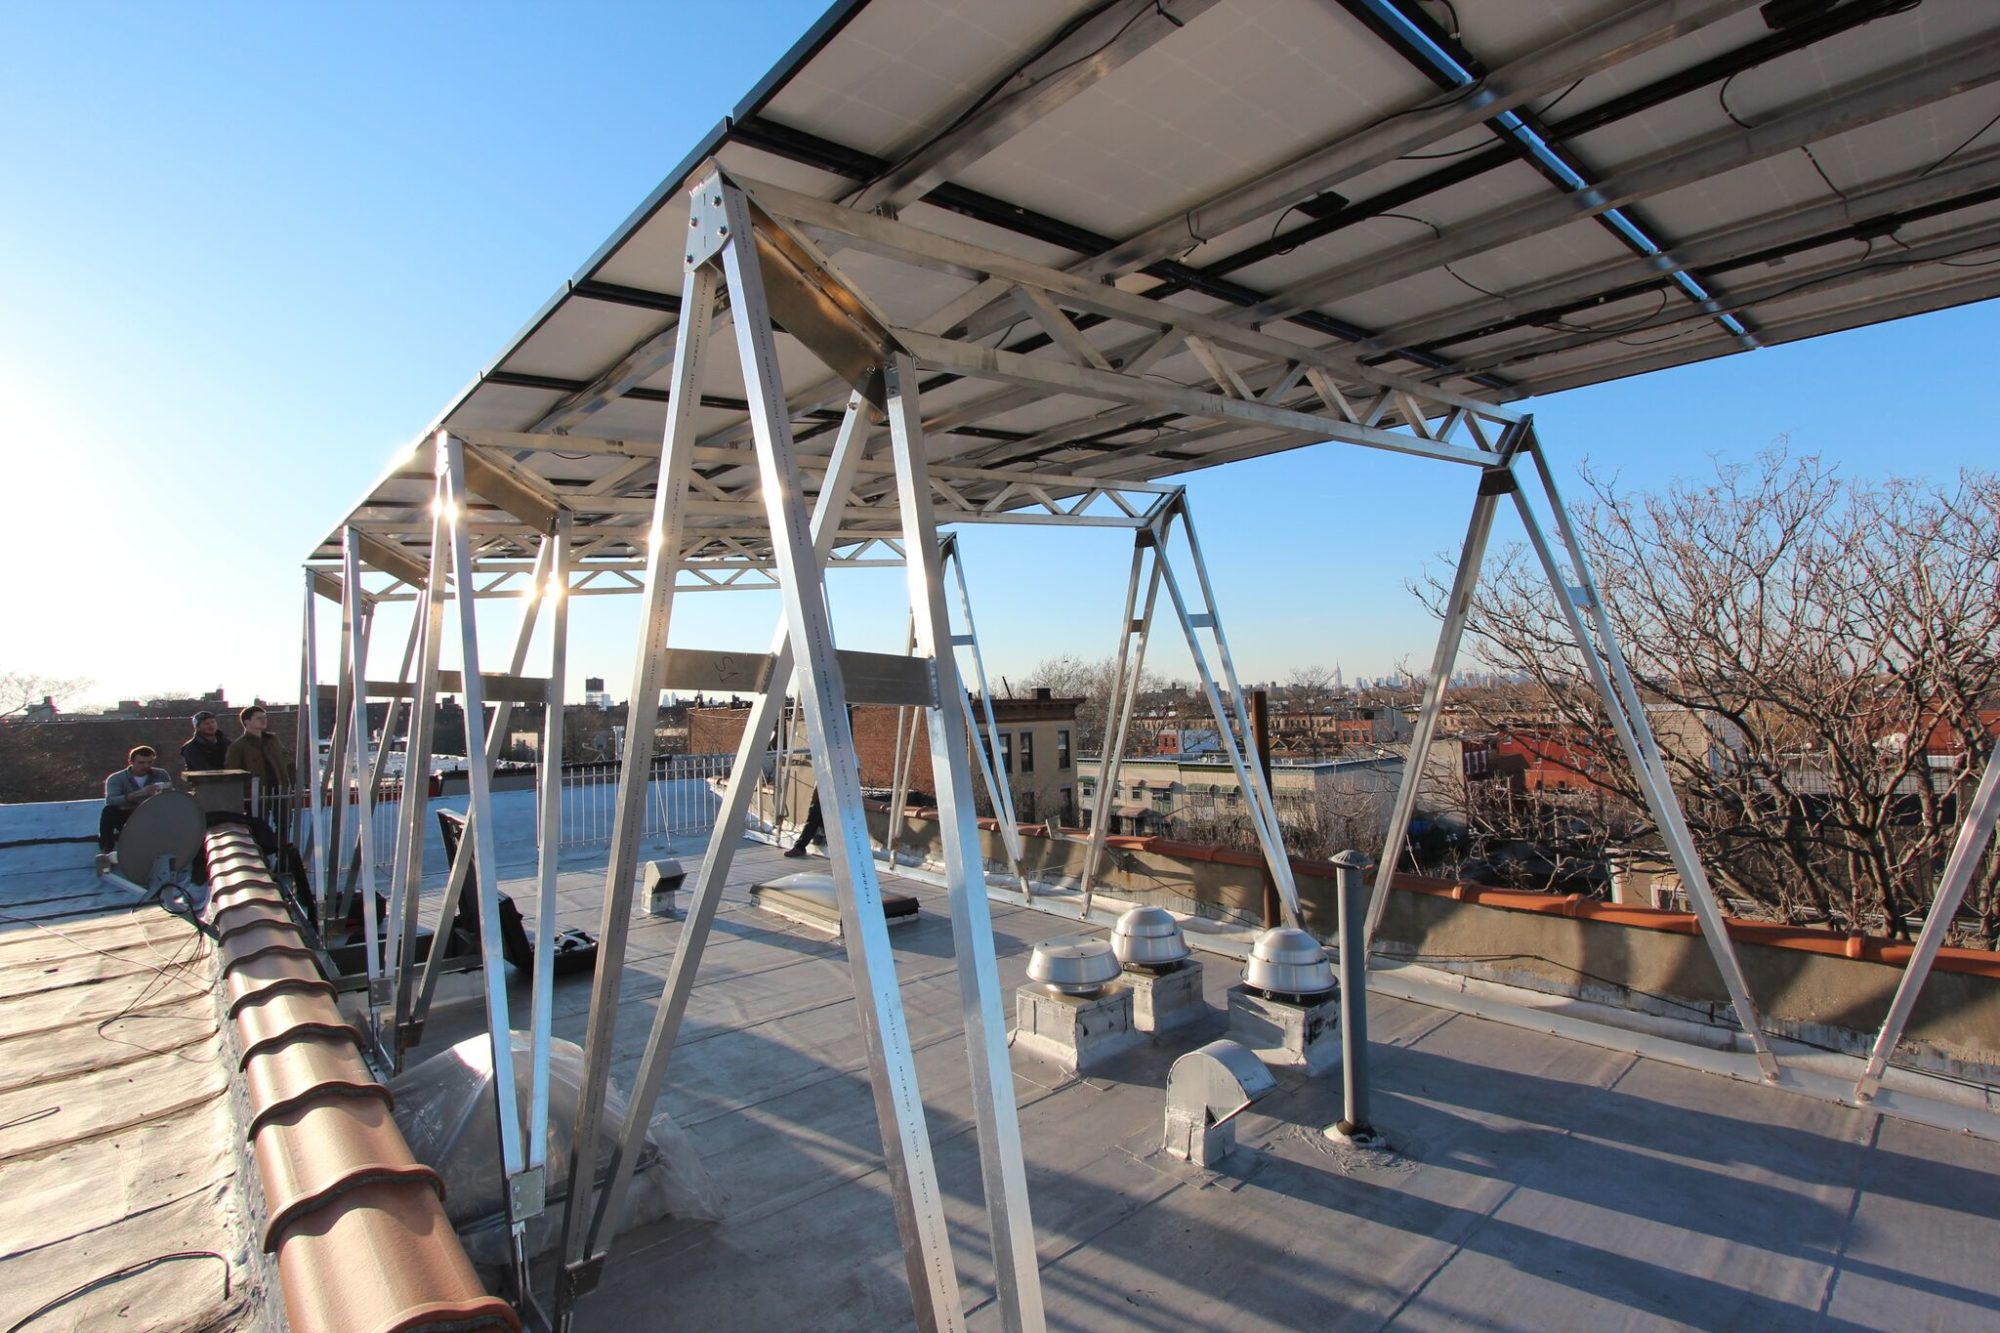 a solar canopy that aims to spread rooftop solar in urban areas